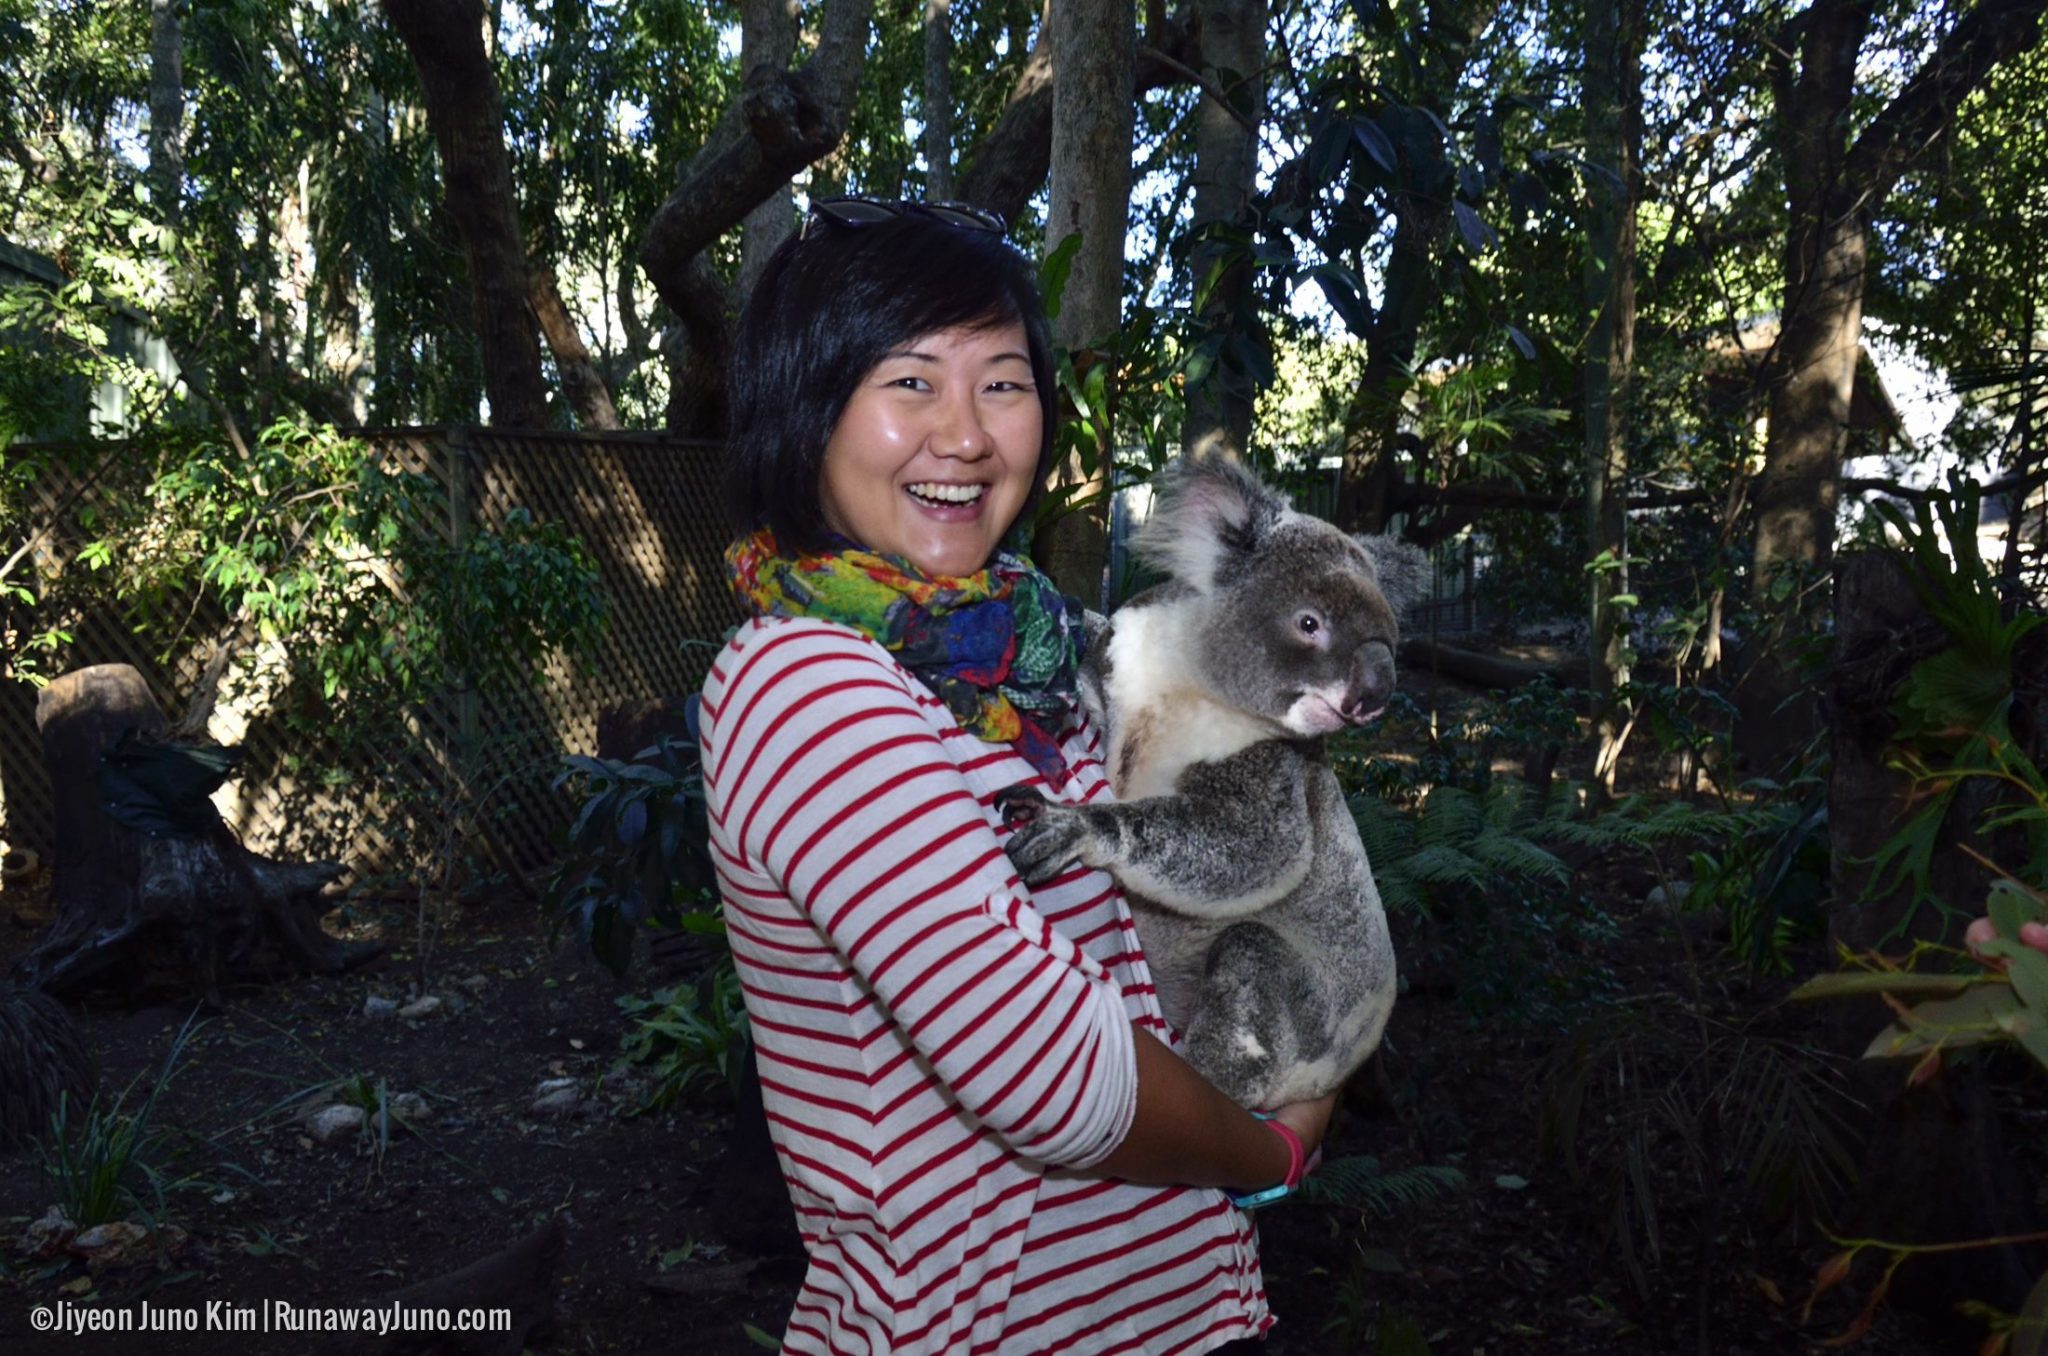 Lone Pine Koala Sanctuary in Brisbane, Australia